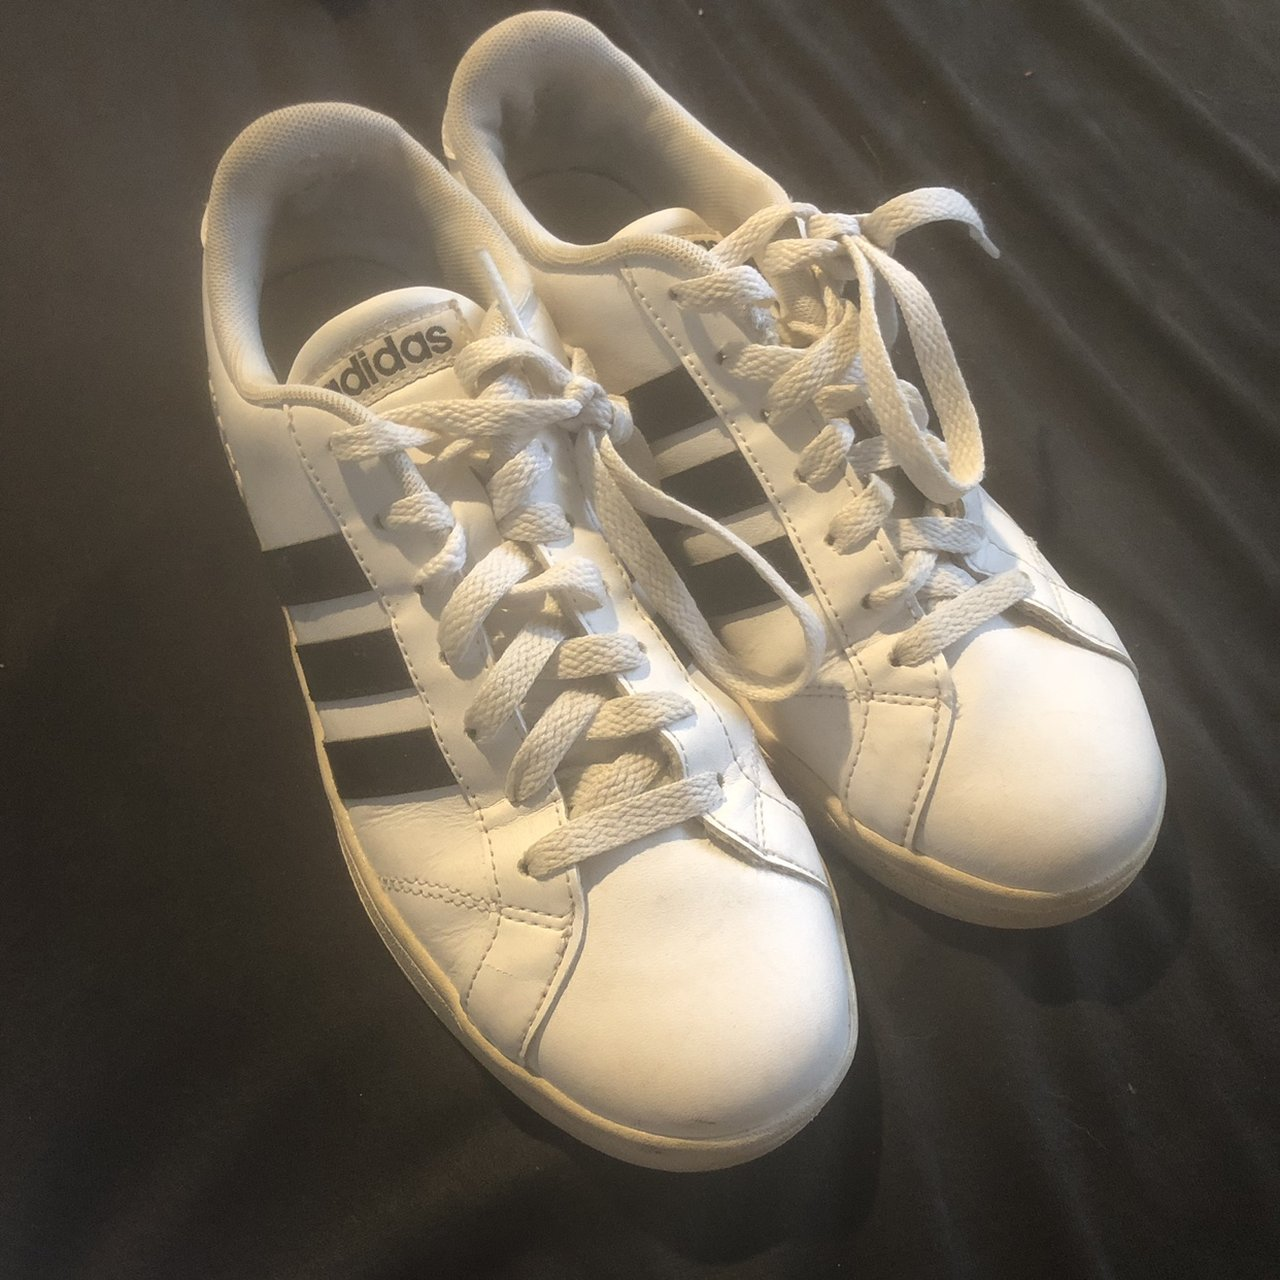 8ff043c4349 adidas super star striped shoes price negotiable sole is - Depop